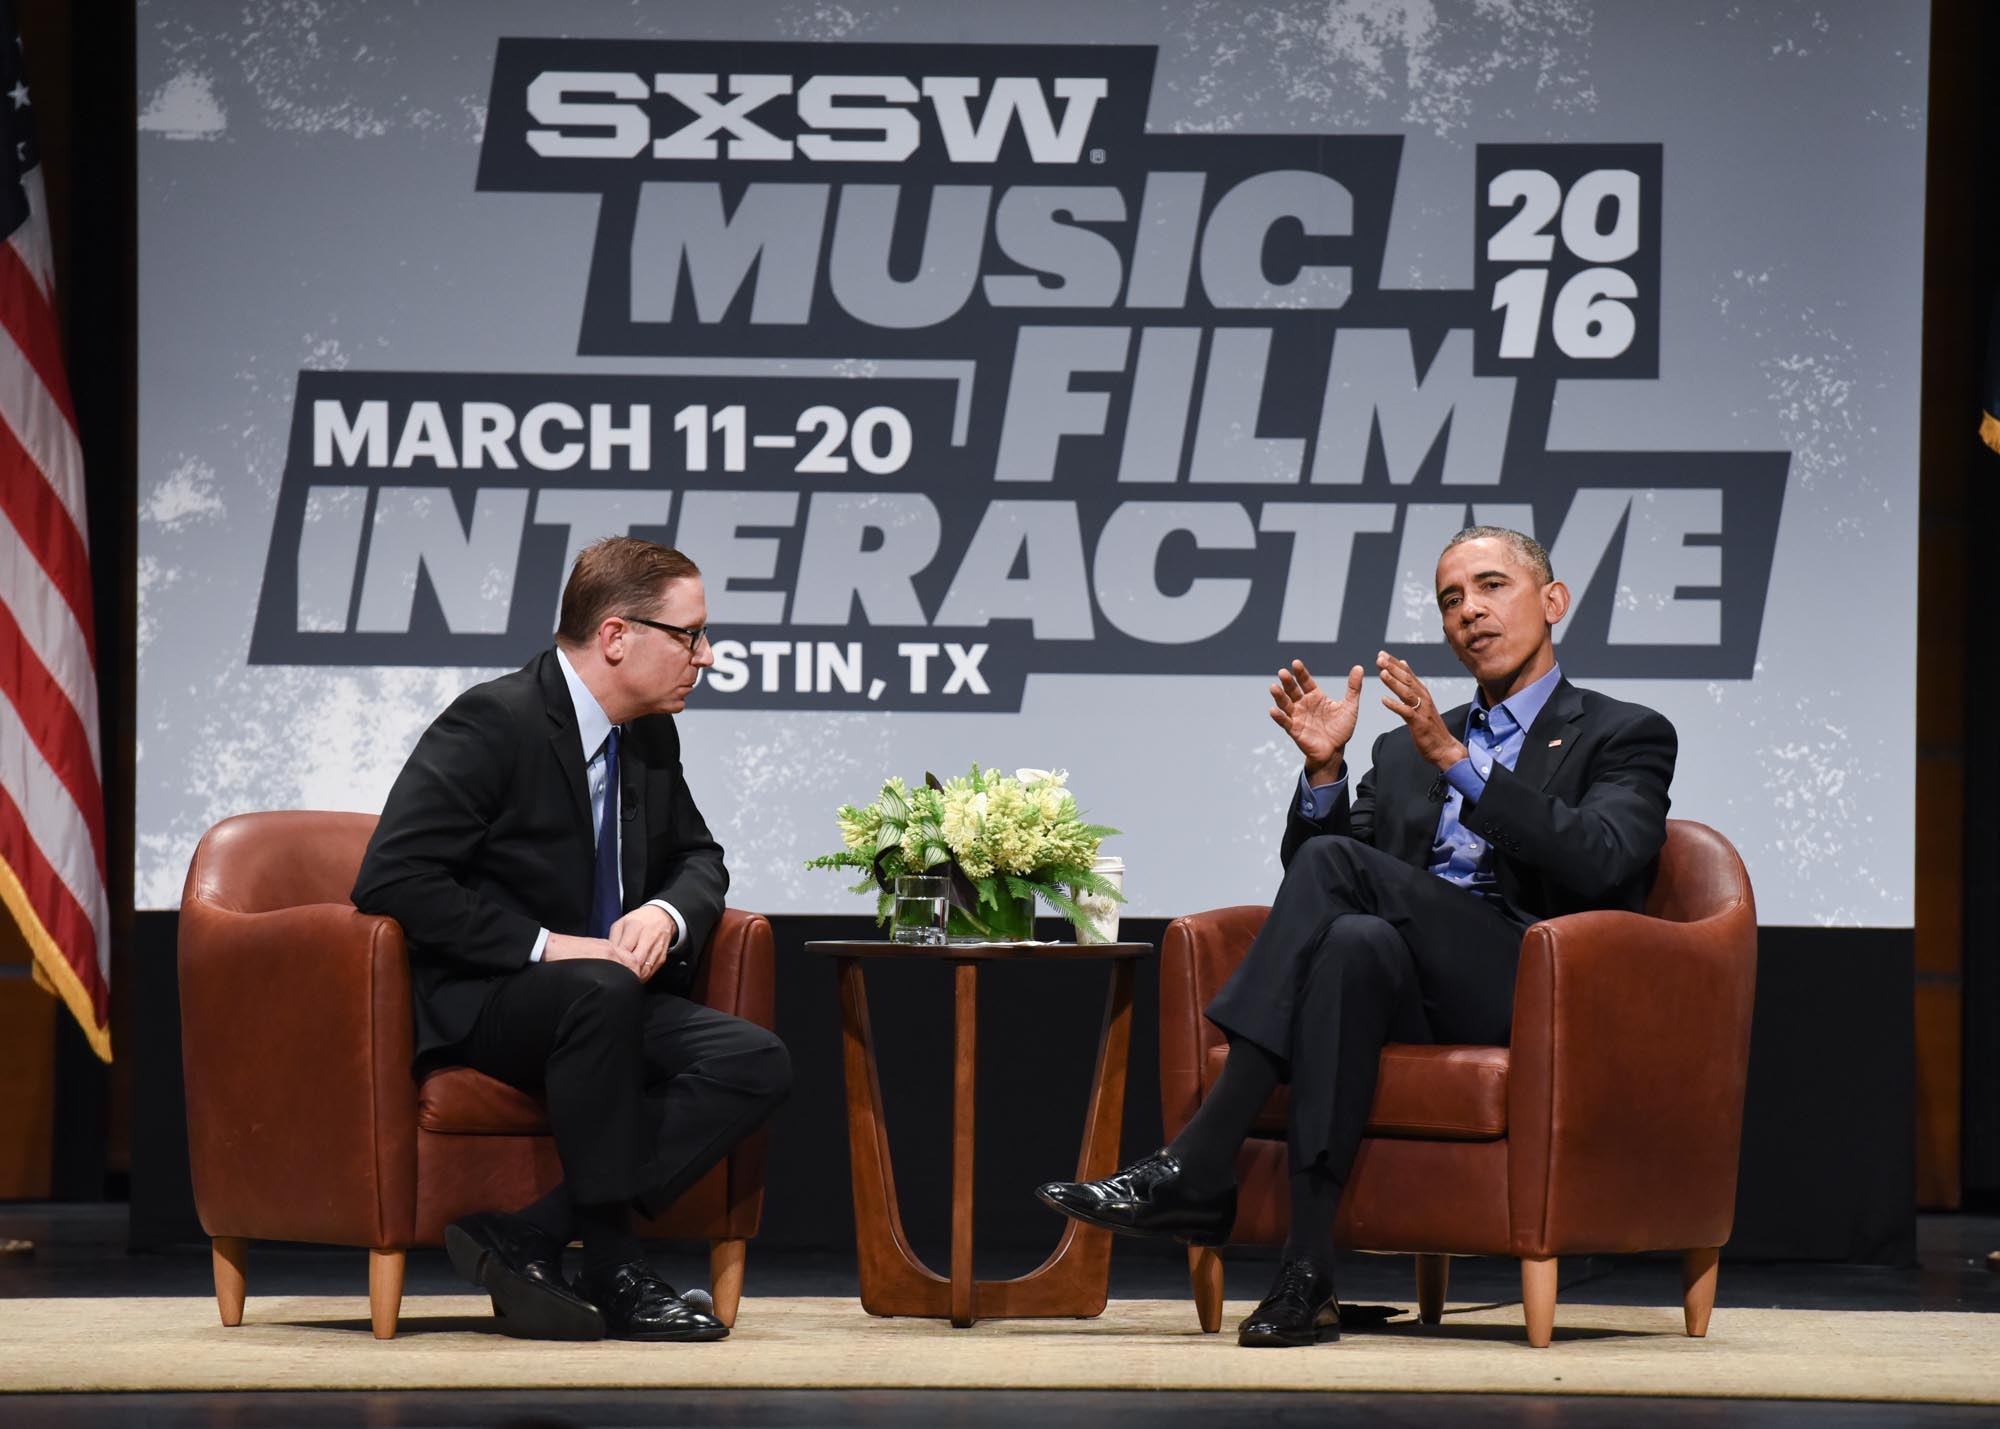 President Obama speaks with Evan Smith, CEO and Editor in Chief of the Texas Tribune, as part of the SXSW Interactive Keynote Conversation at The long Center on Friday, March 11, 2016.  Erika Rich for American-Statesman